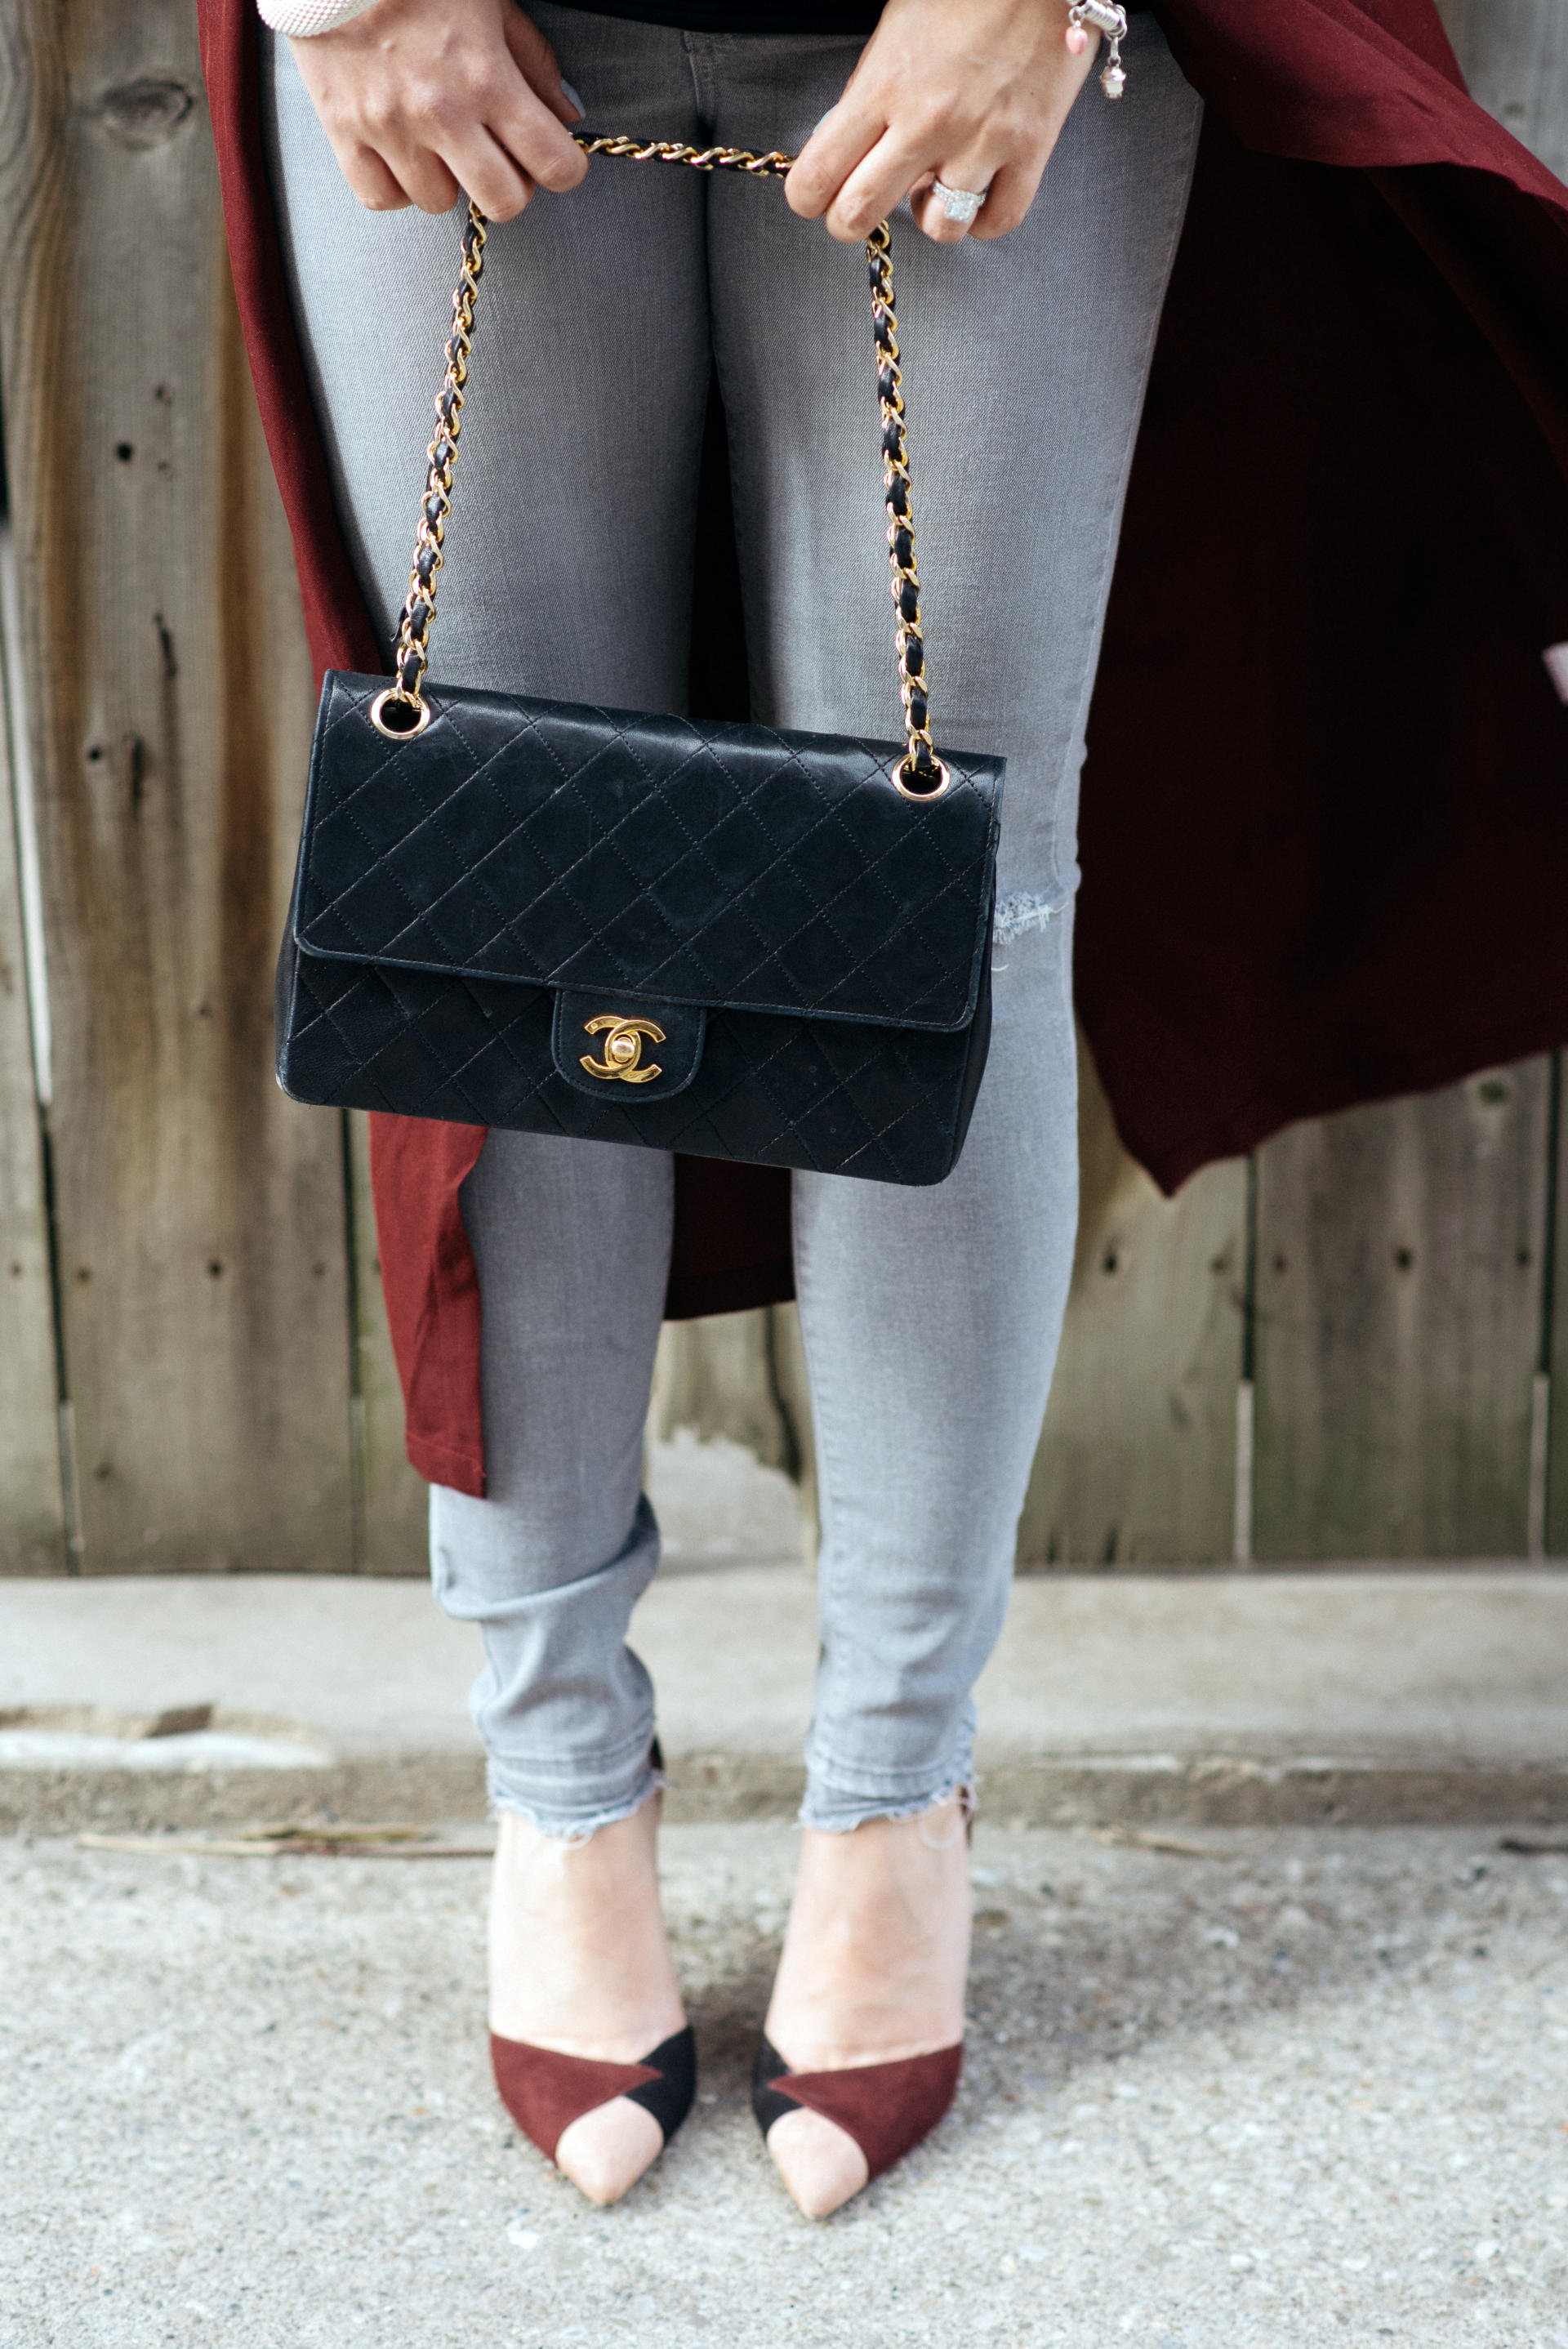 Black Chanel Flap Bag | Grey Maternity Jeans | Bump Style | Bordeaux Transition Trench Spring